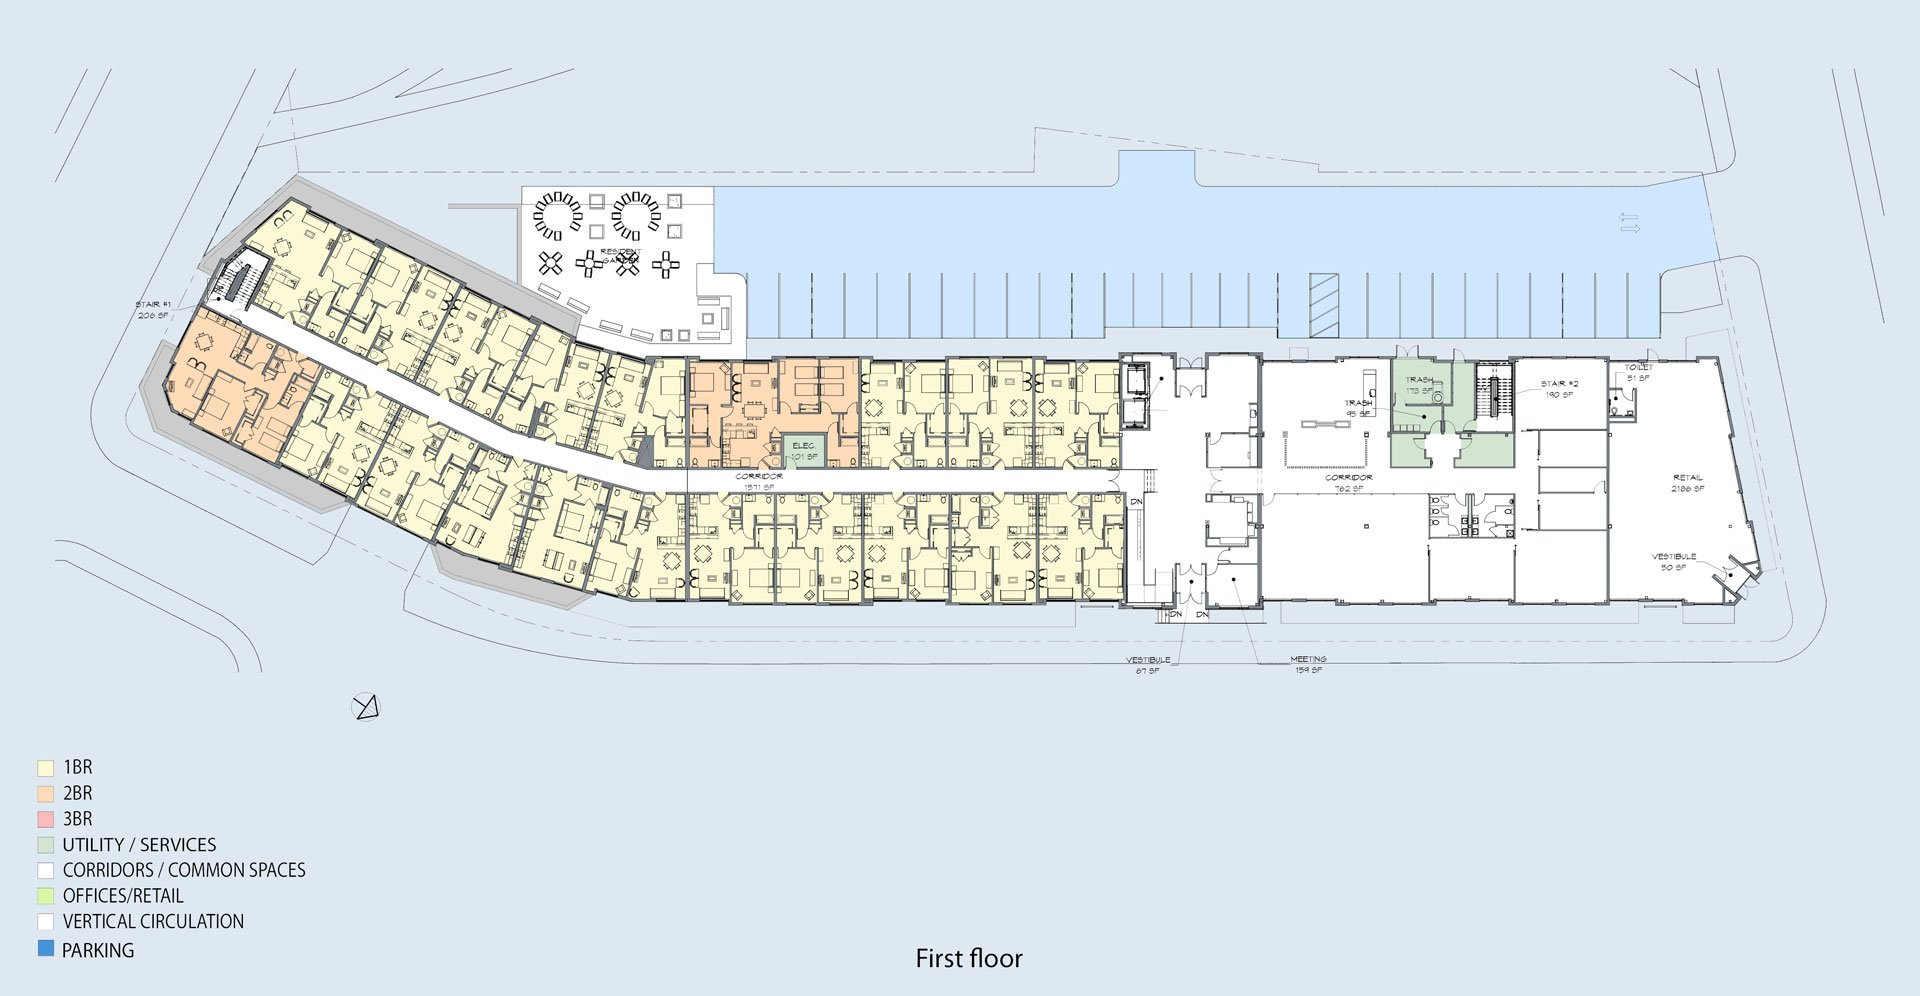 The Mark City Crossing first floor plan